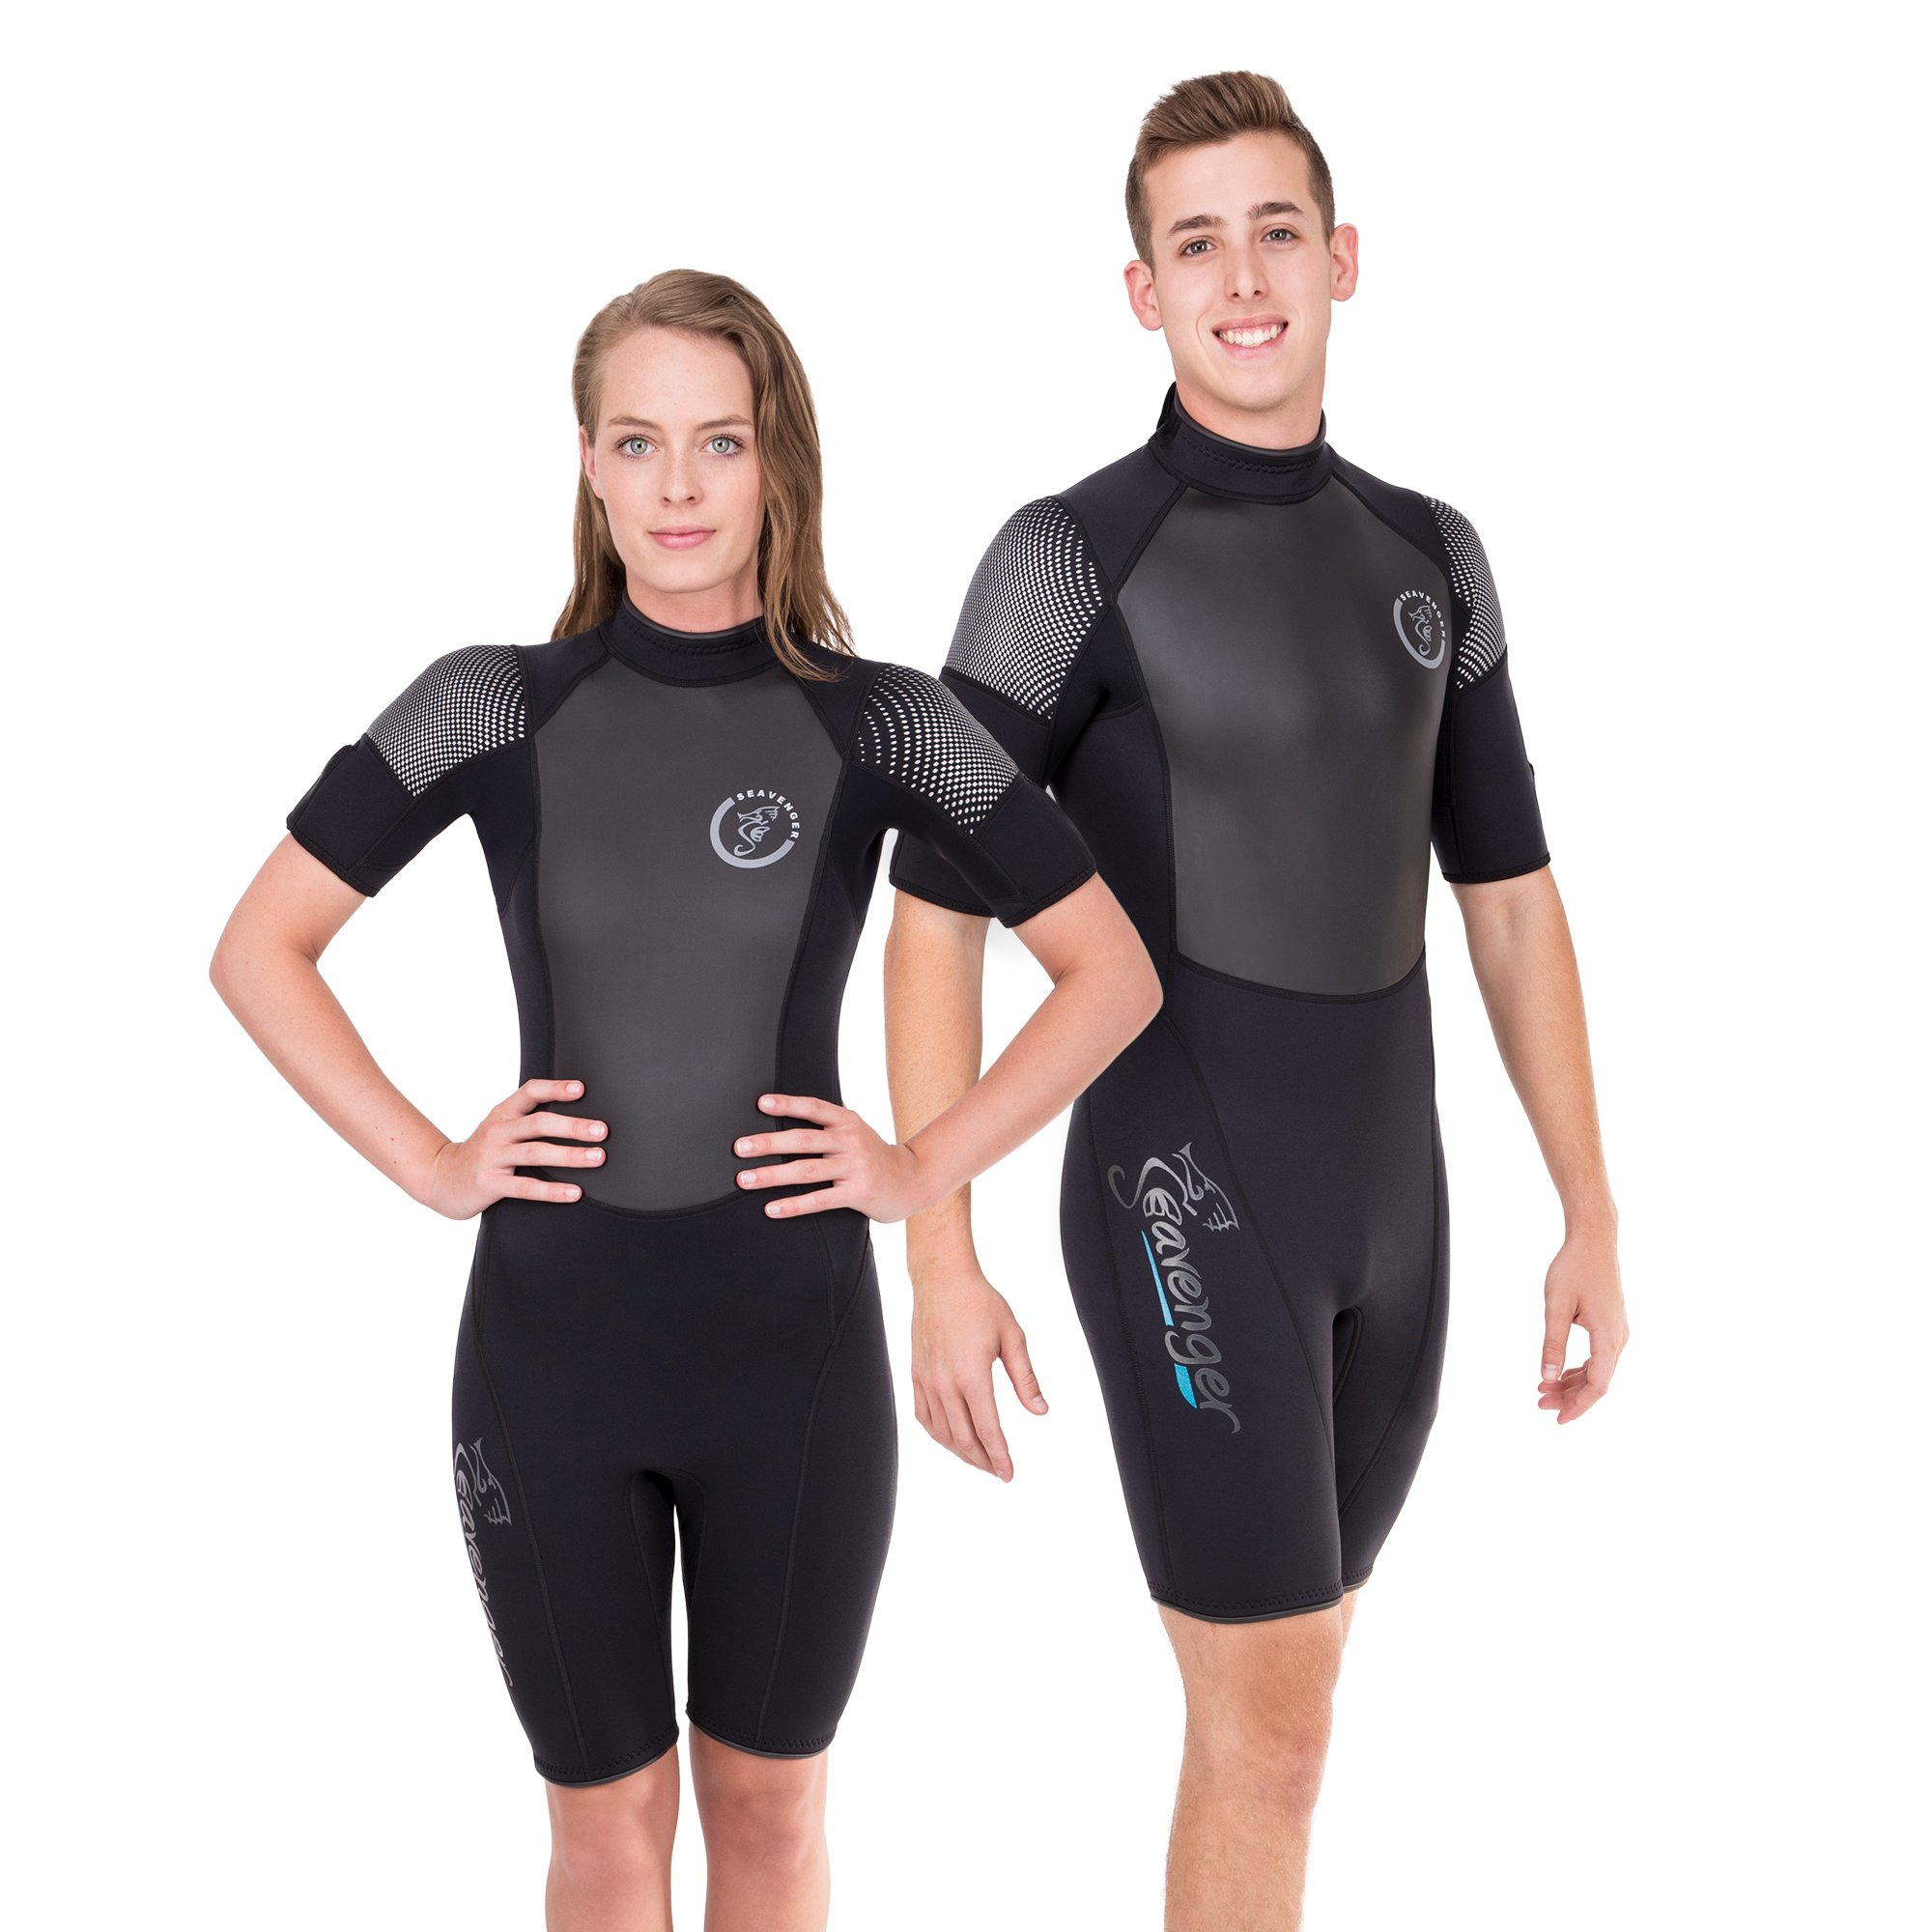 Seavenger Navigator 3mm Shorty | Short Sleeve Wetsuit for Men and Women | Surfing, Snorkeling, Scuba Diving (Surfing Black, Men's X-Small) by Seavenger